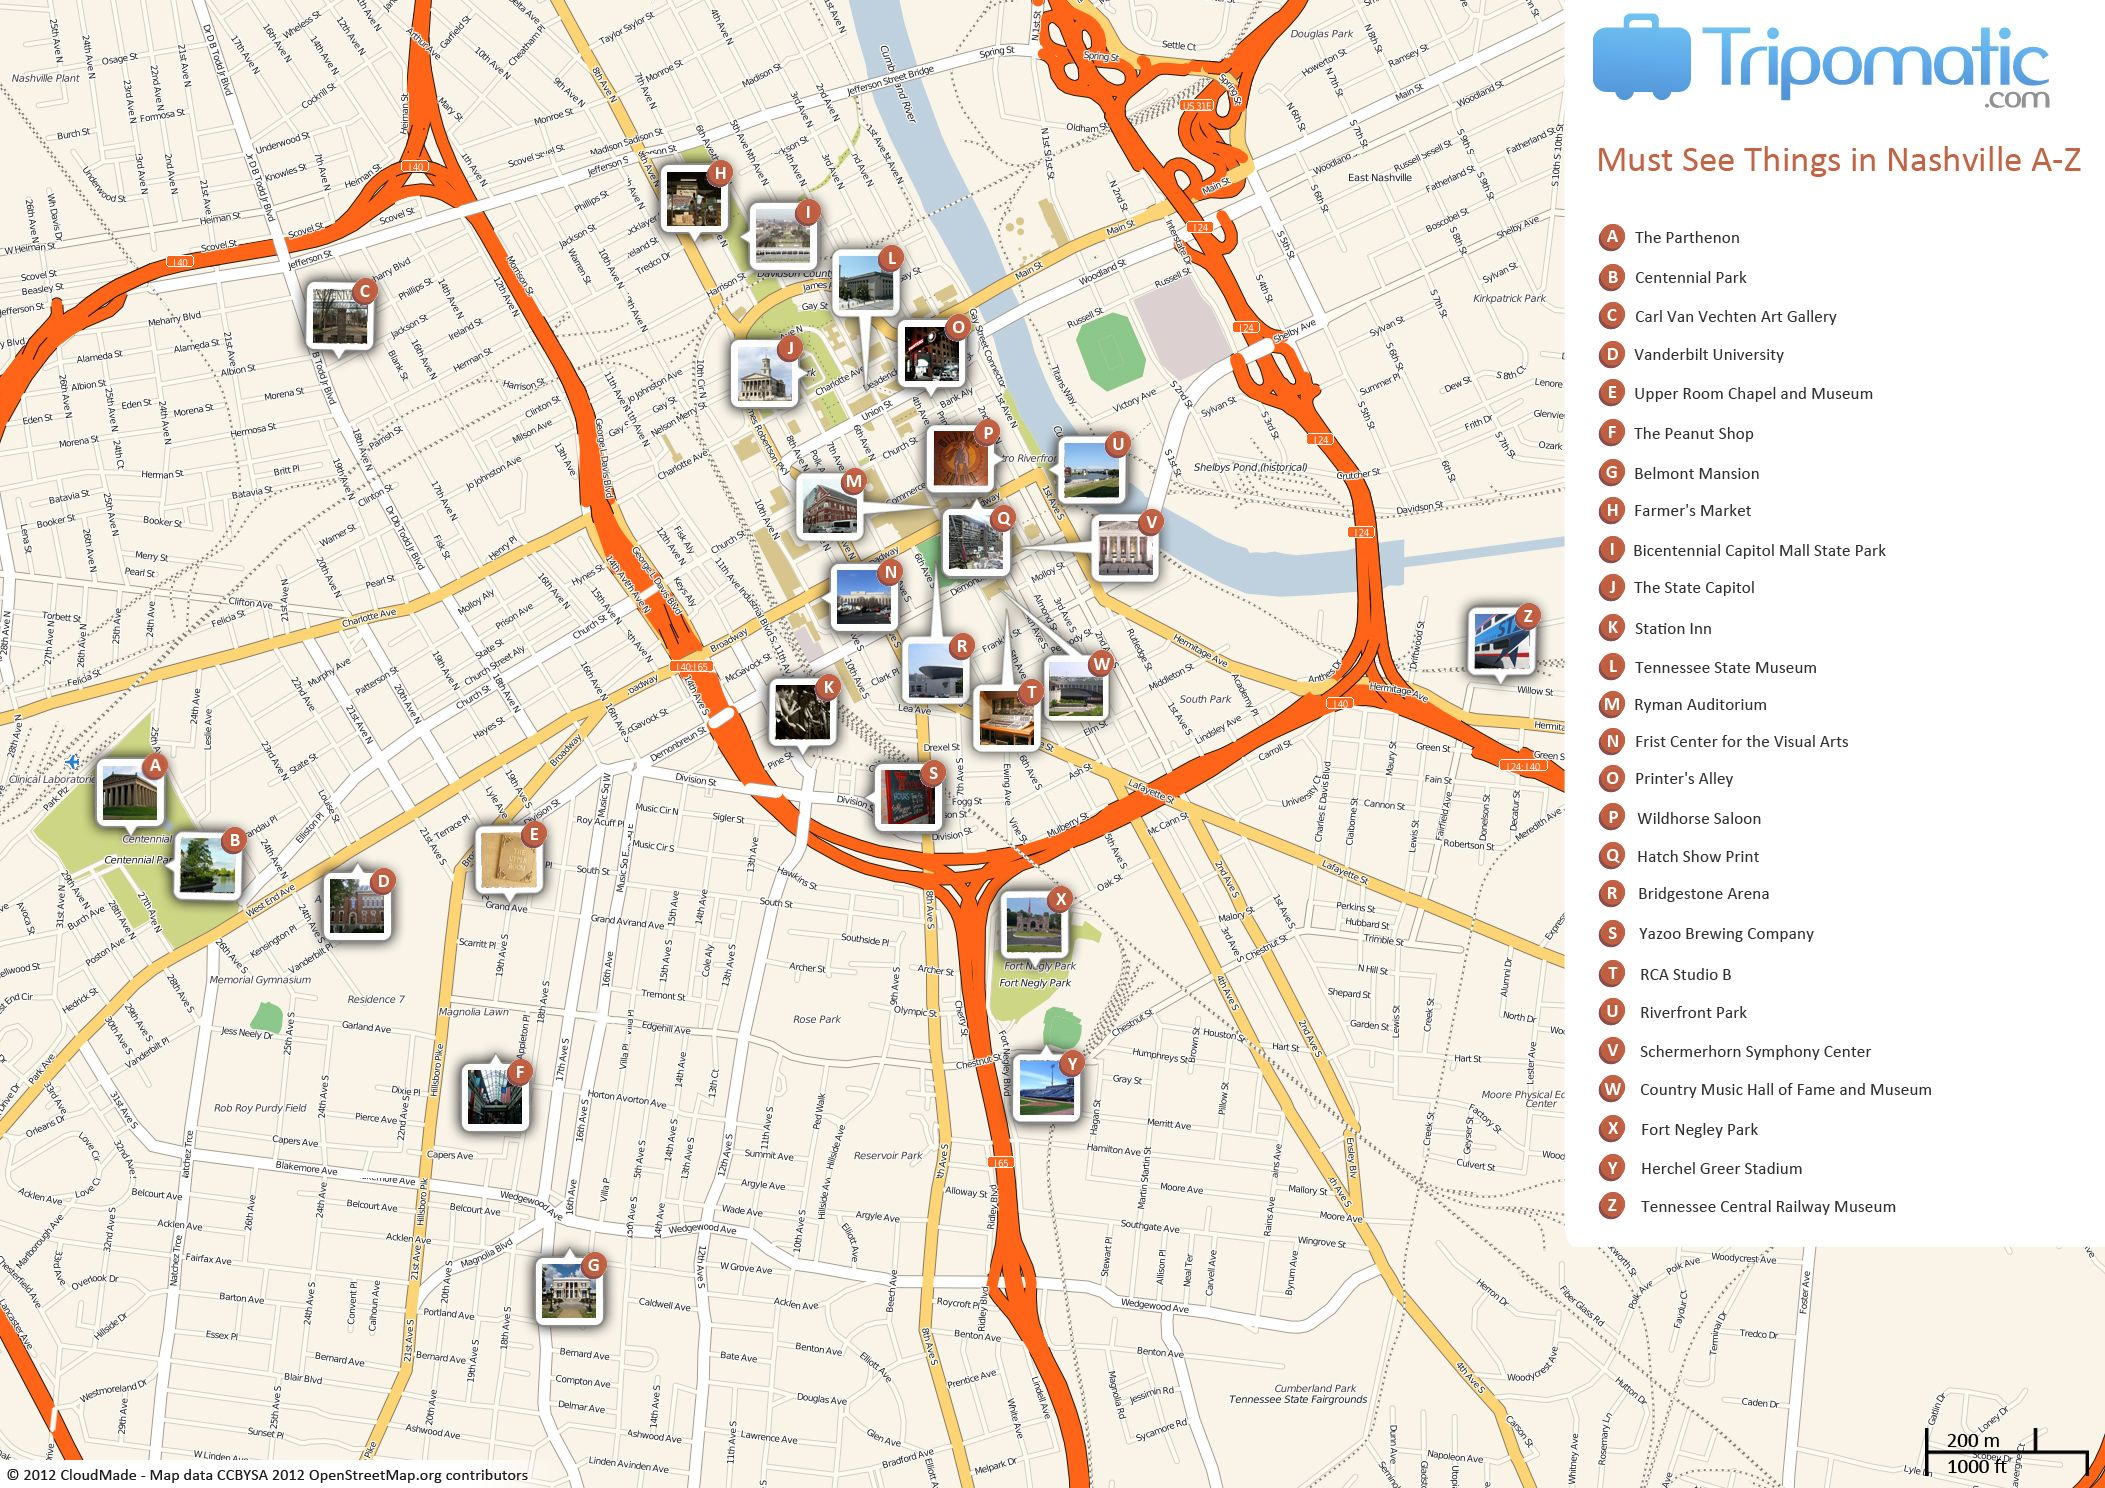 Nashville Printable Tourist Map | Nashville attractions ... on downtown nashville art, dining downtown nashville map, downtown nashville library, downtown nashville entertainment, downtown nashville map view, new orleans french quarter street map, downtown nashville shopping, nolensville street map, downtown nashville address, downtown nashville directions, downtown nashville aerial view, nashville downtown parking map, downtown nashville parks, downtown nashville restaurants, downtown nashville events, downtown nashville printable map, downtown nashville bridge map, downtown nashville walking map, downtown nashville tourist, downtown nashville business,